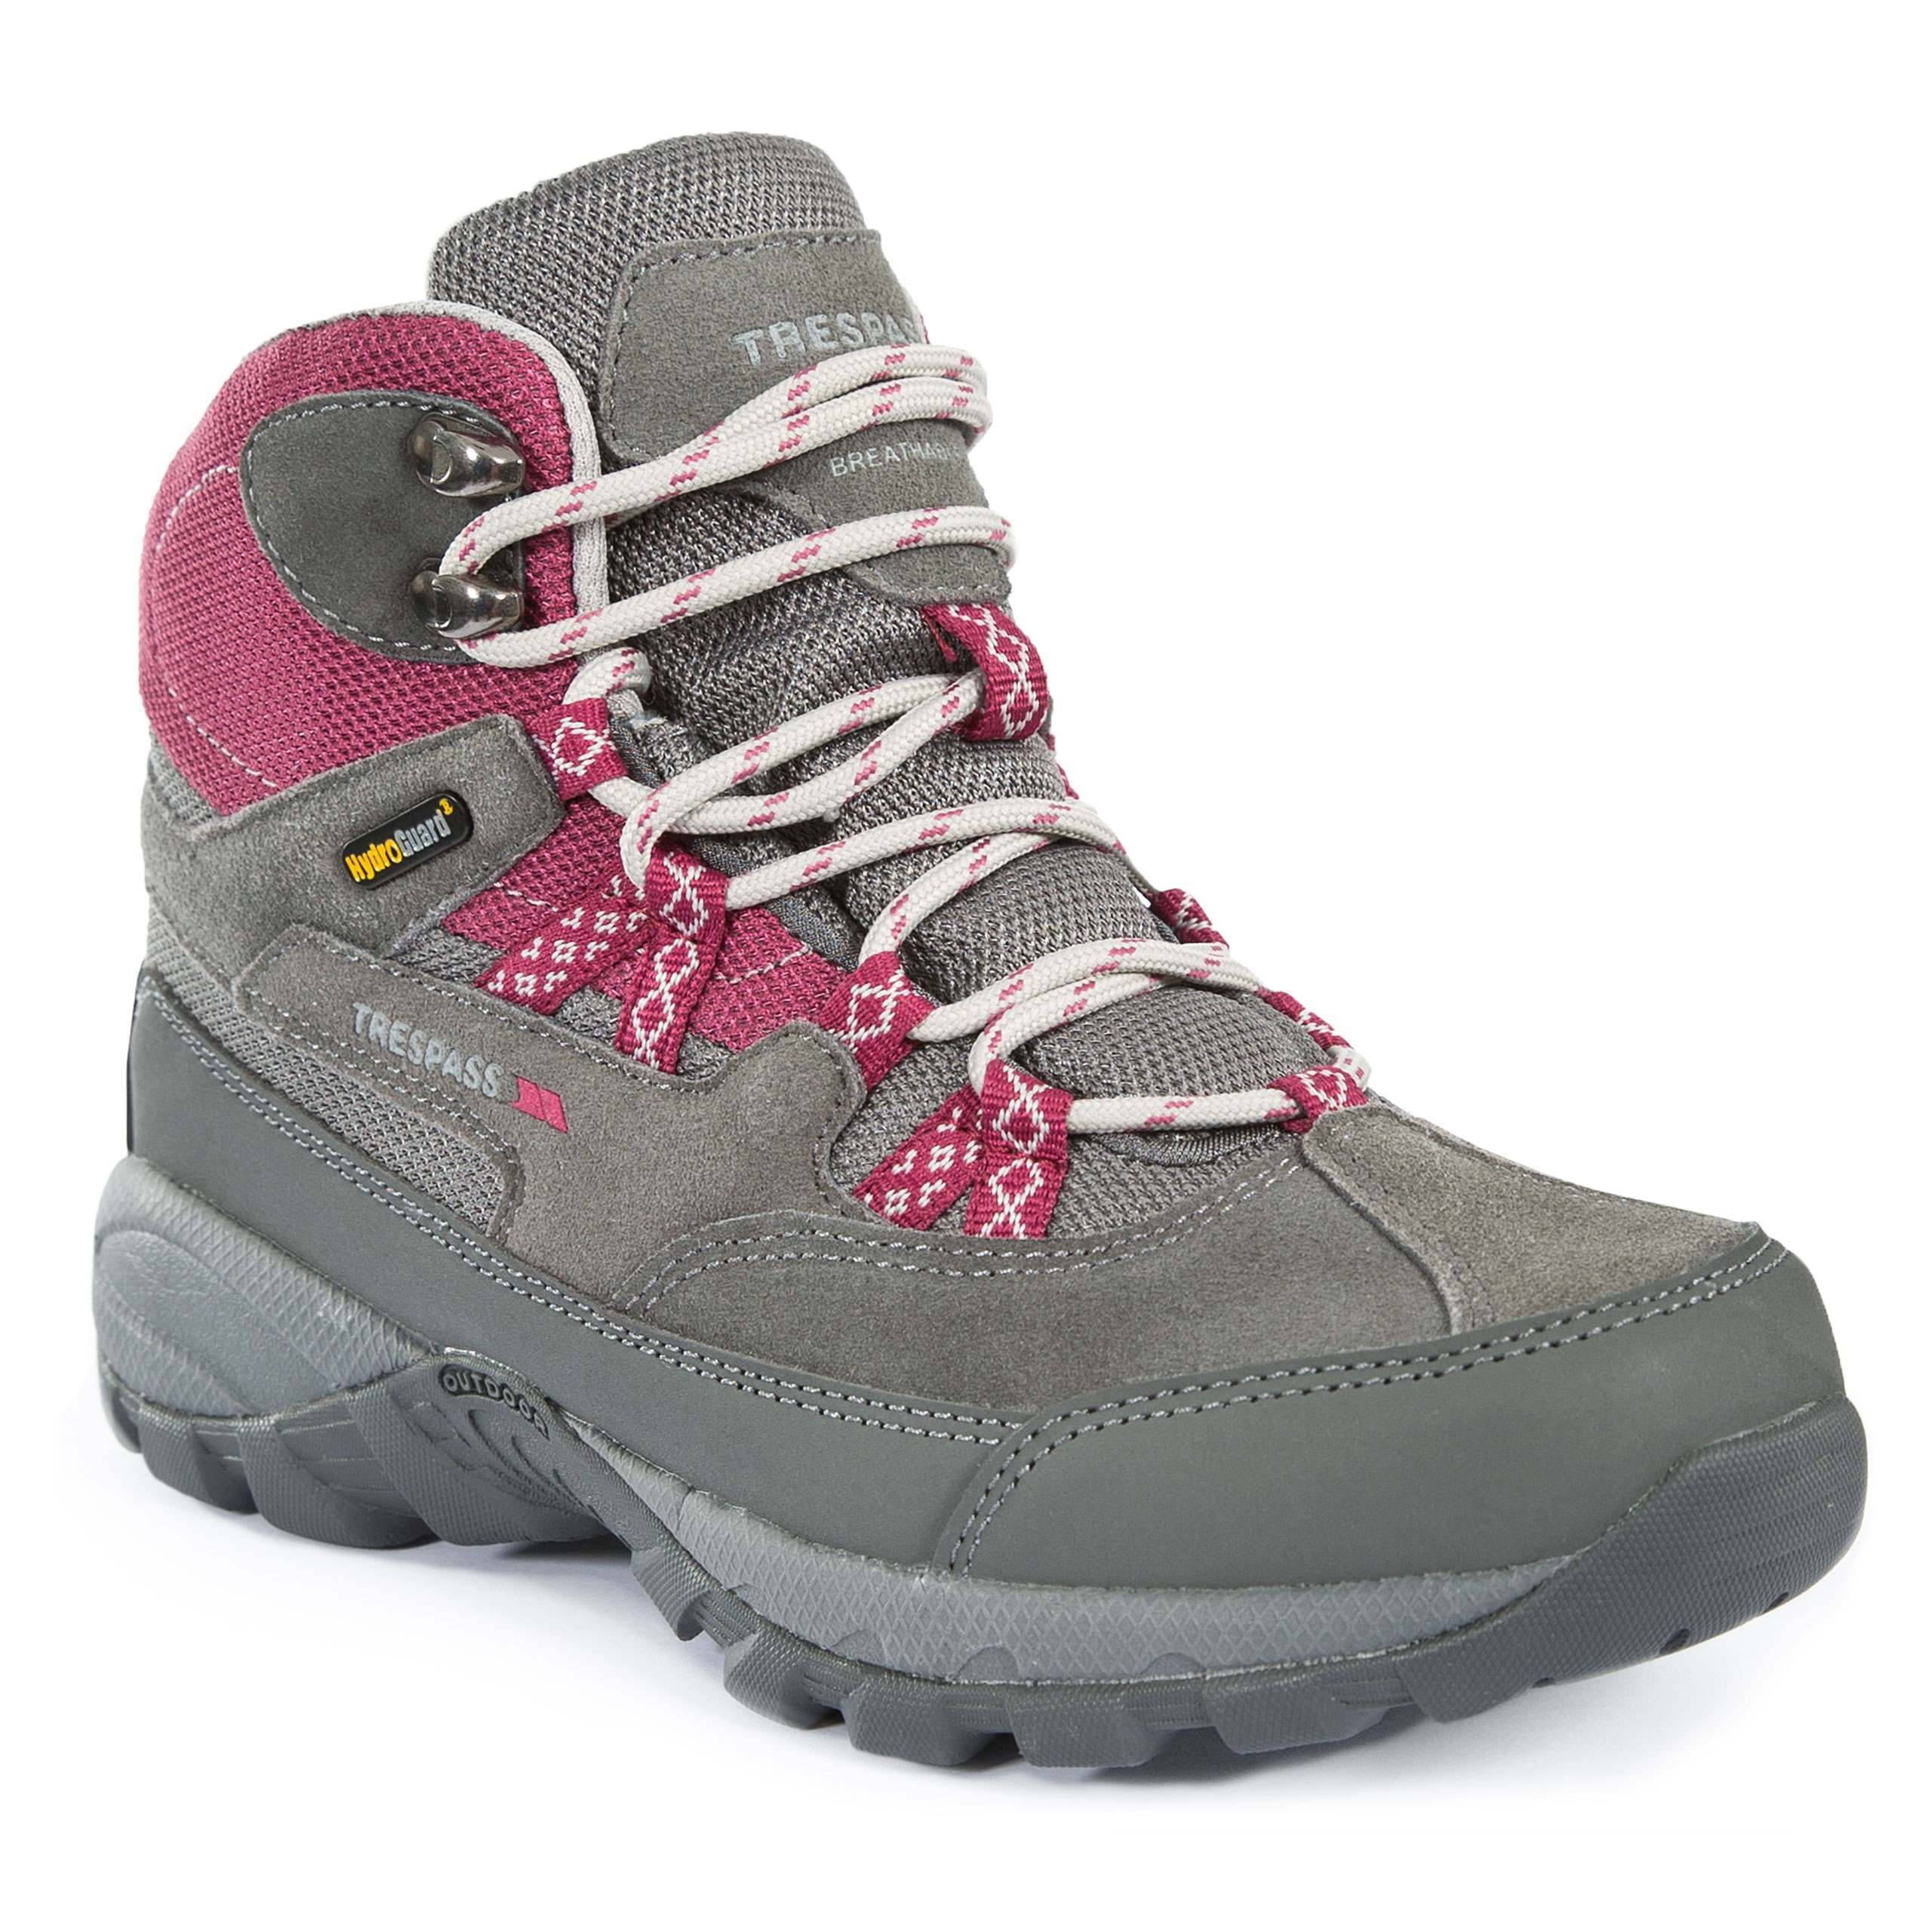 look out for half off shoes for cheap Merse Women's Breathable Walking Boots